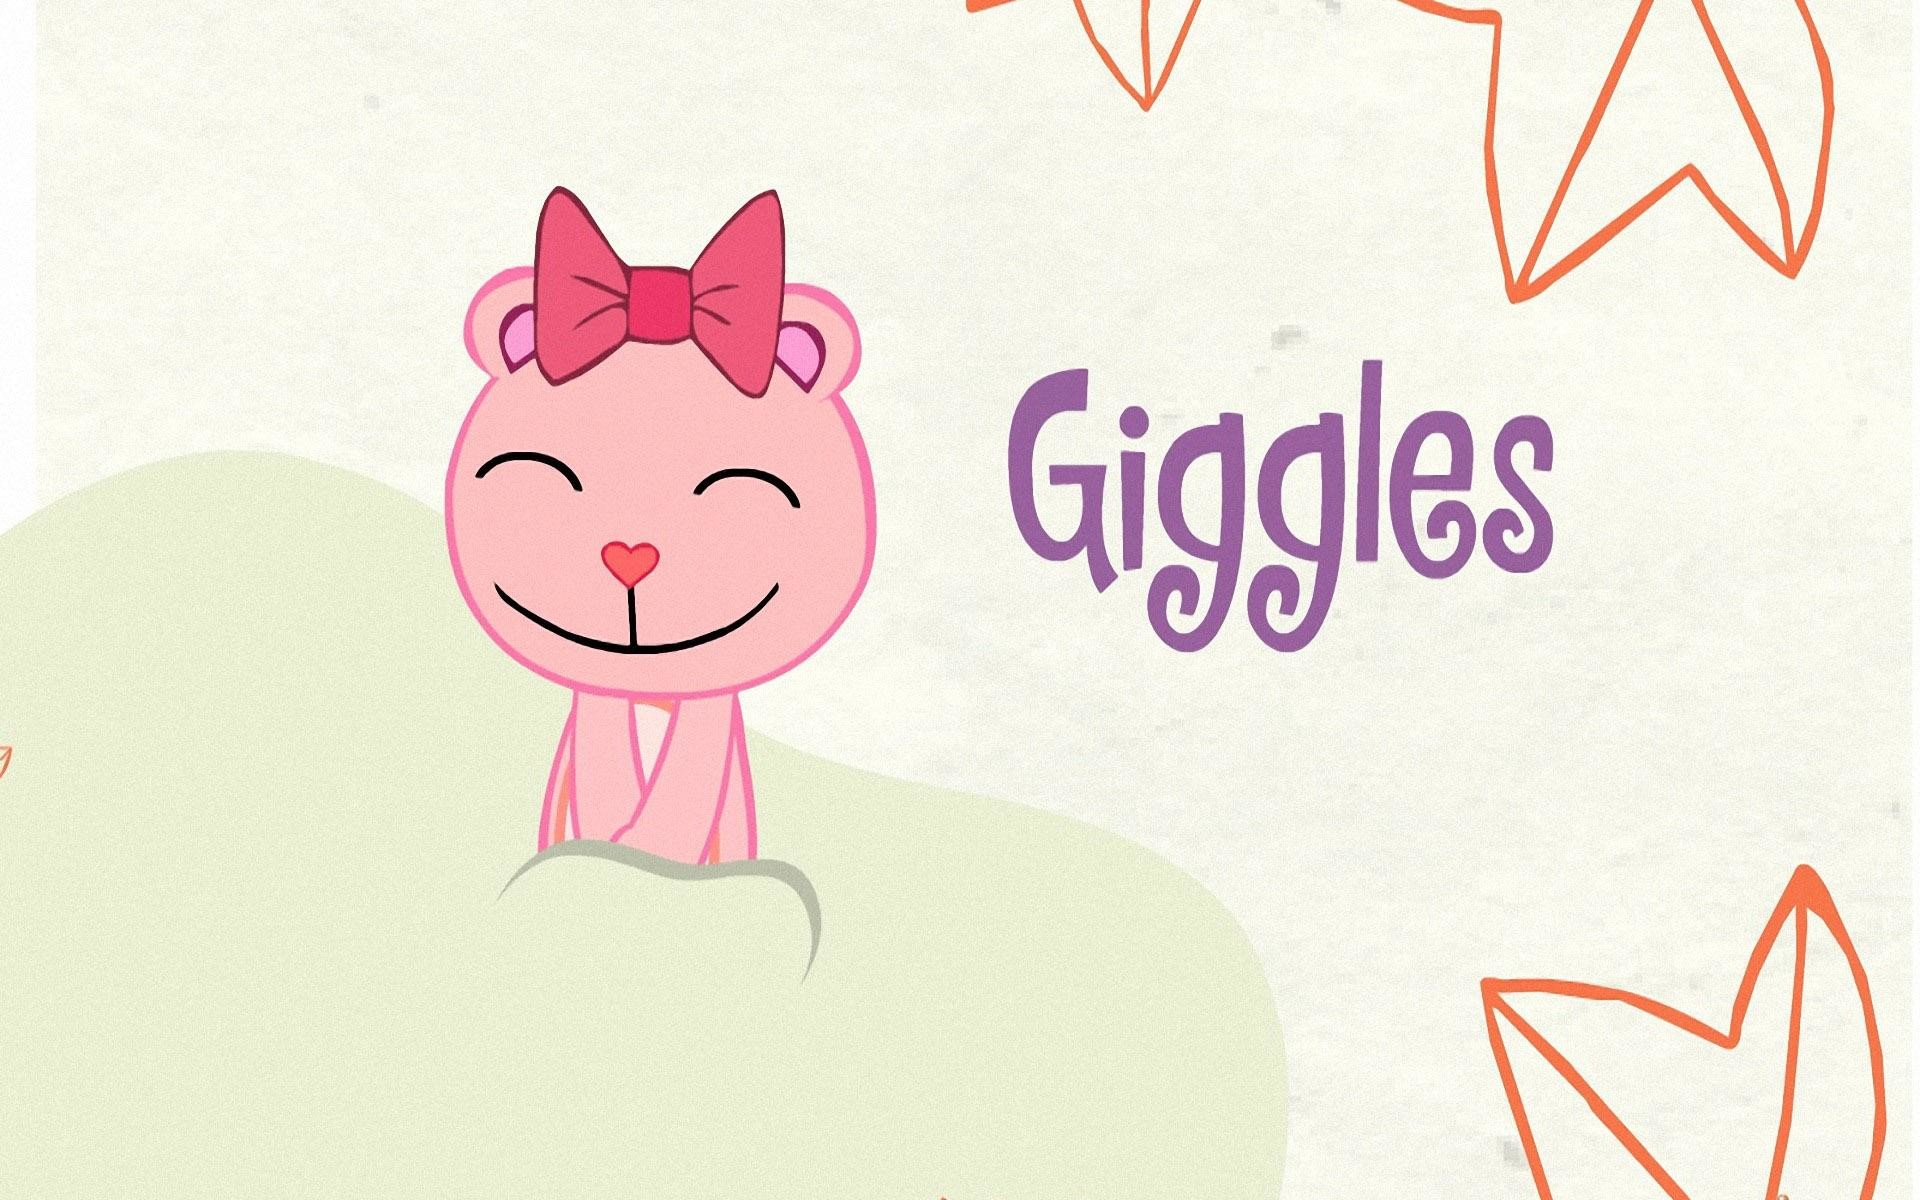 1920x1200 giggles - happy tree friends 2011 wallpapers - hd wallpapers 91223